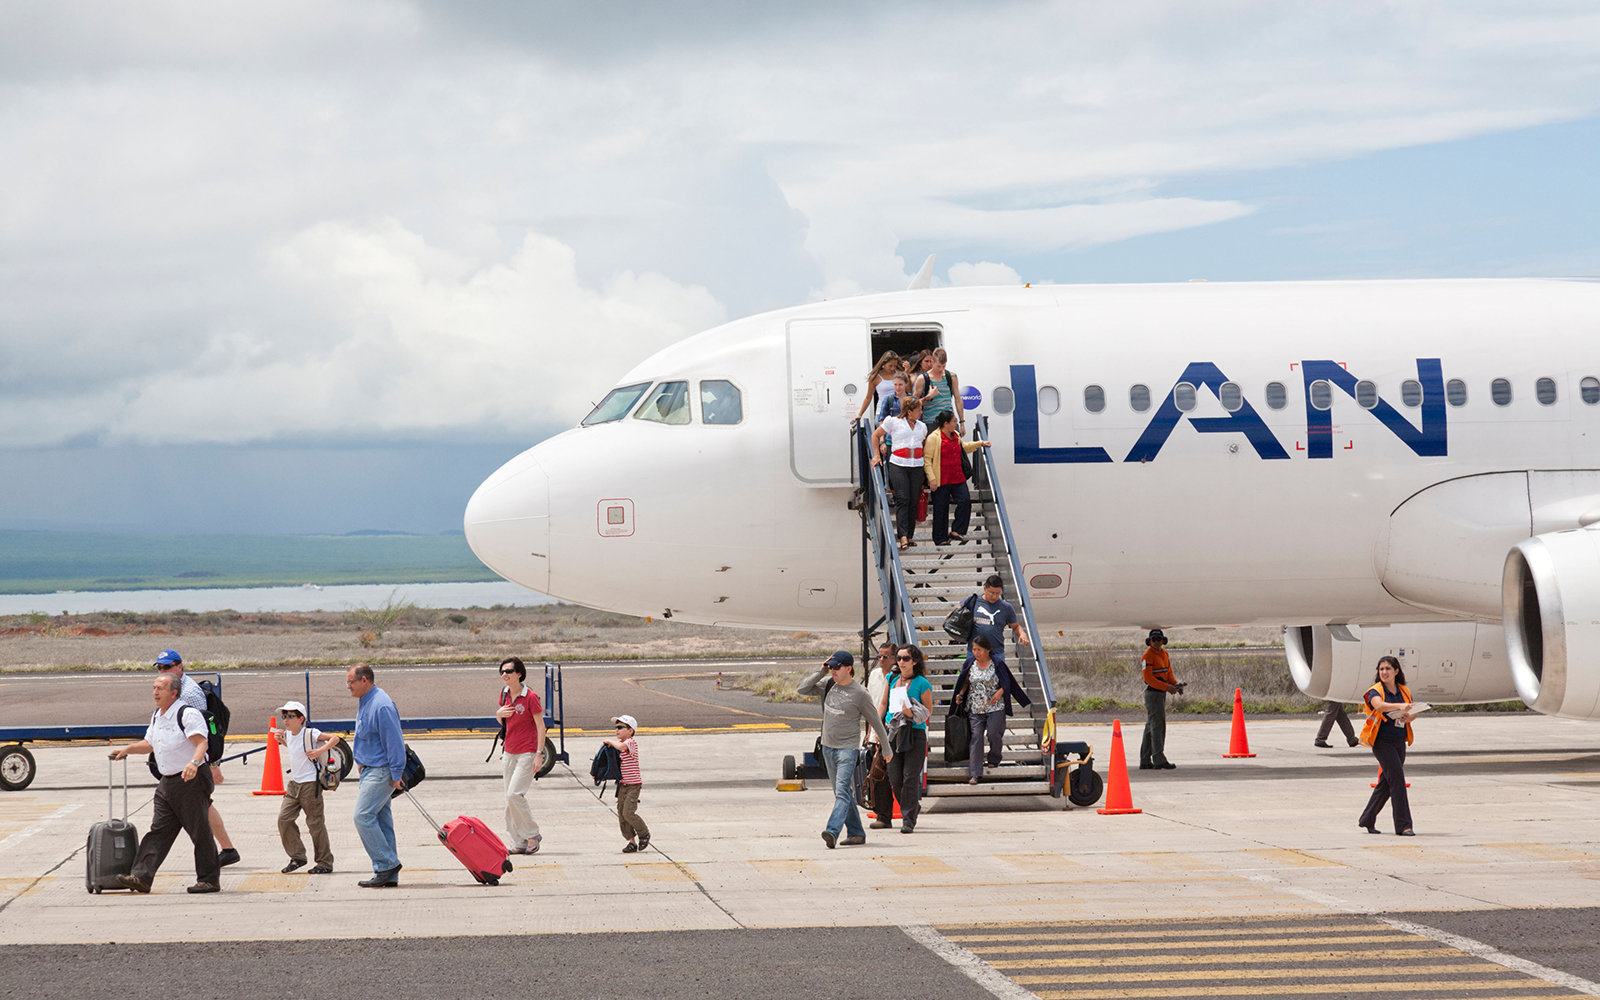 LAN Airplane, Baltra Airport, Baltra Island, Galapagos Islands, Ecuador